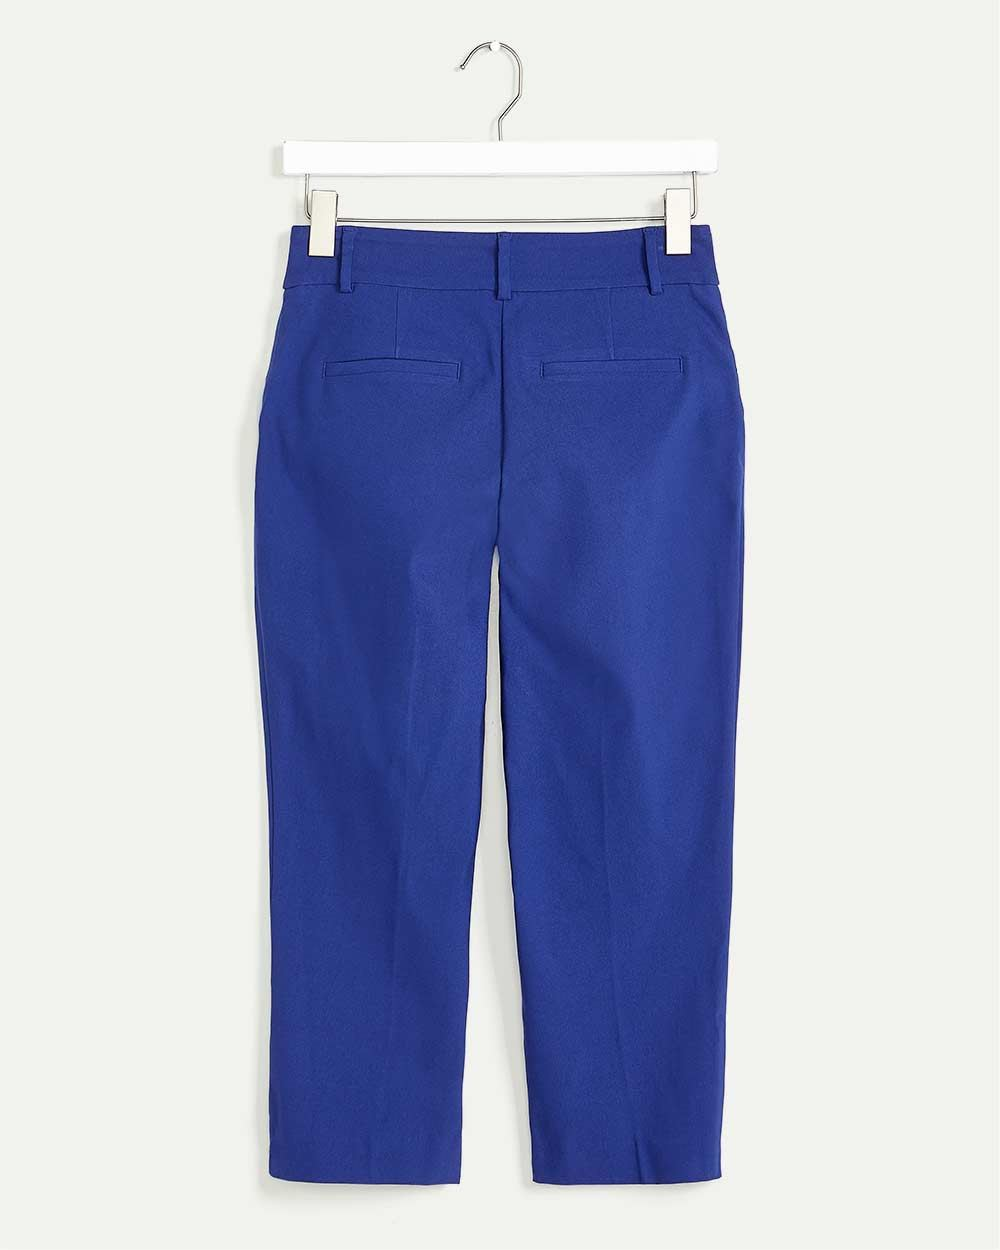 Pull On Capri Pants The Iconic - Petite